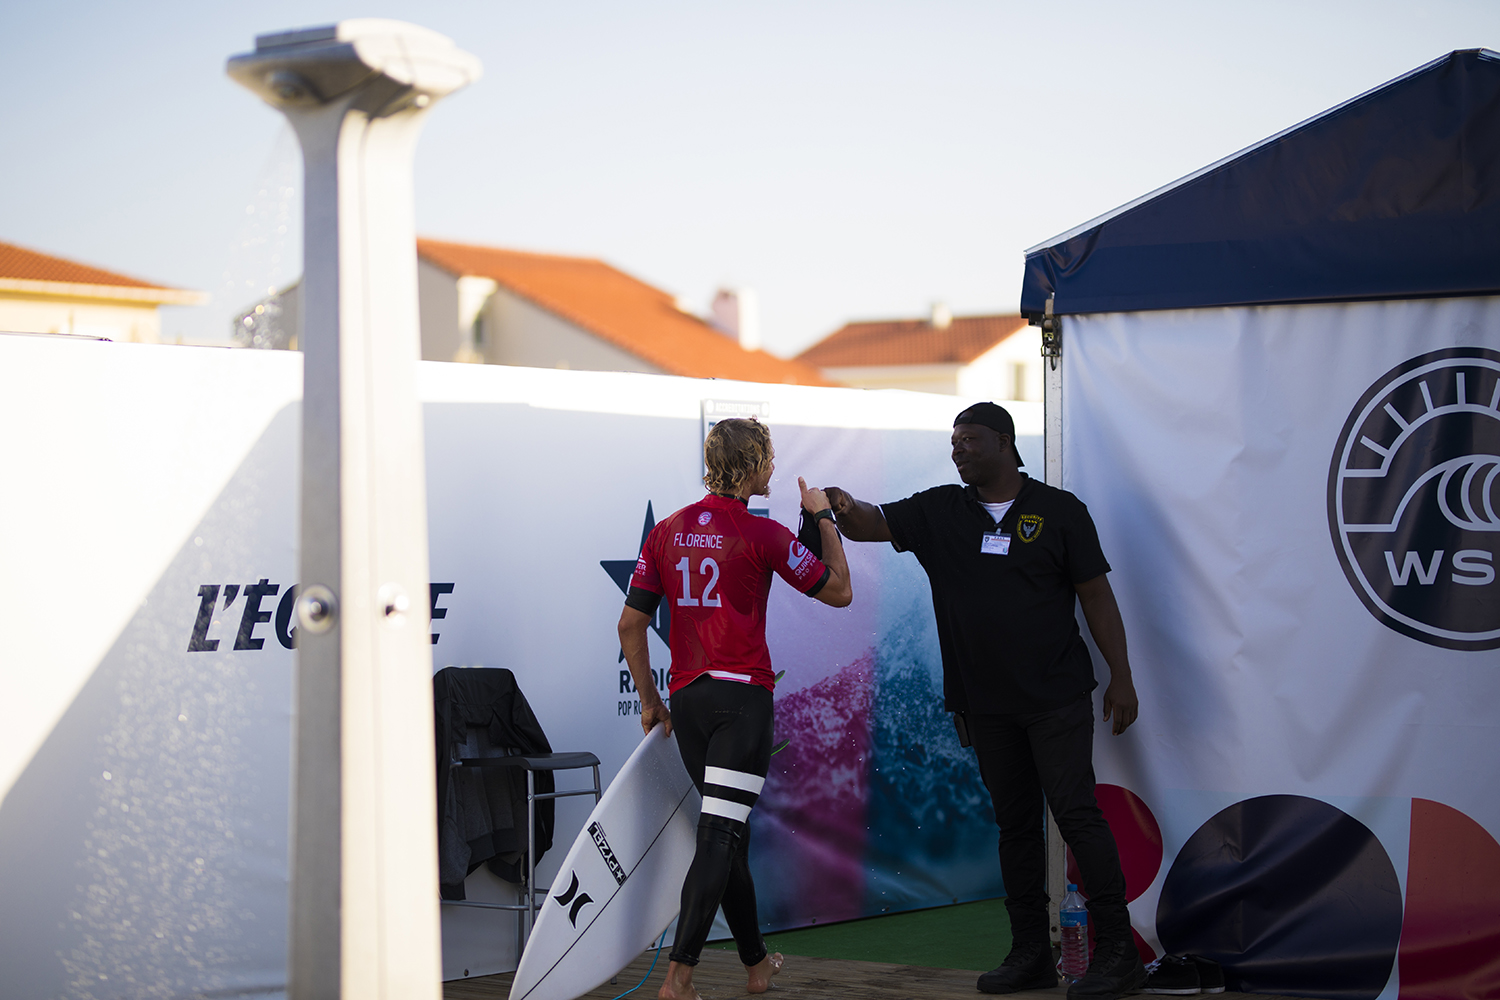 john-john-florence-quiksilver-pro-france-2017-final-hossegor-france-guillaume-arrieta-we-creative